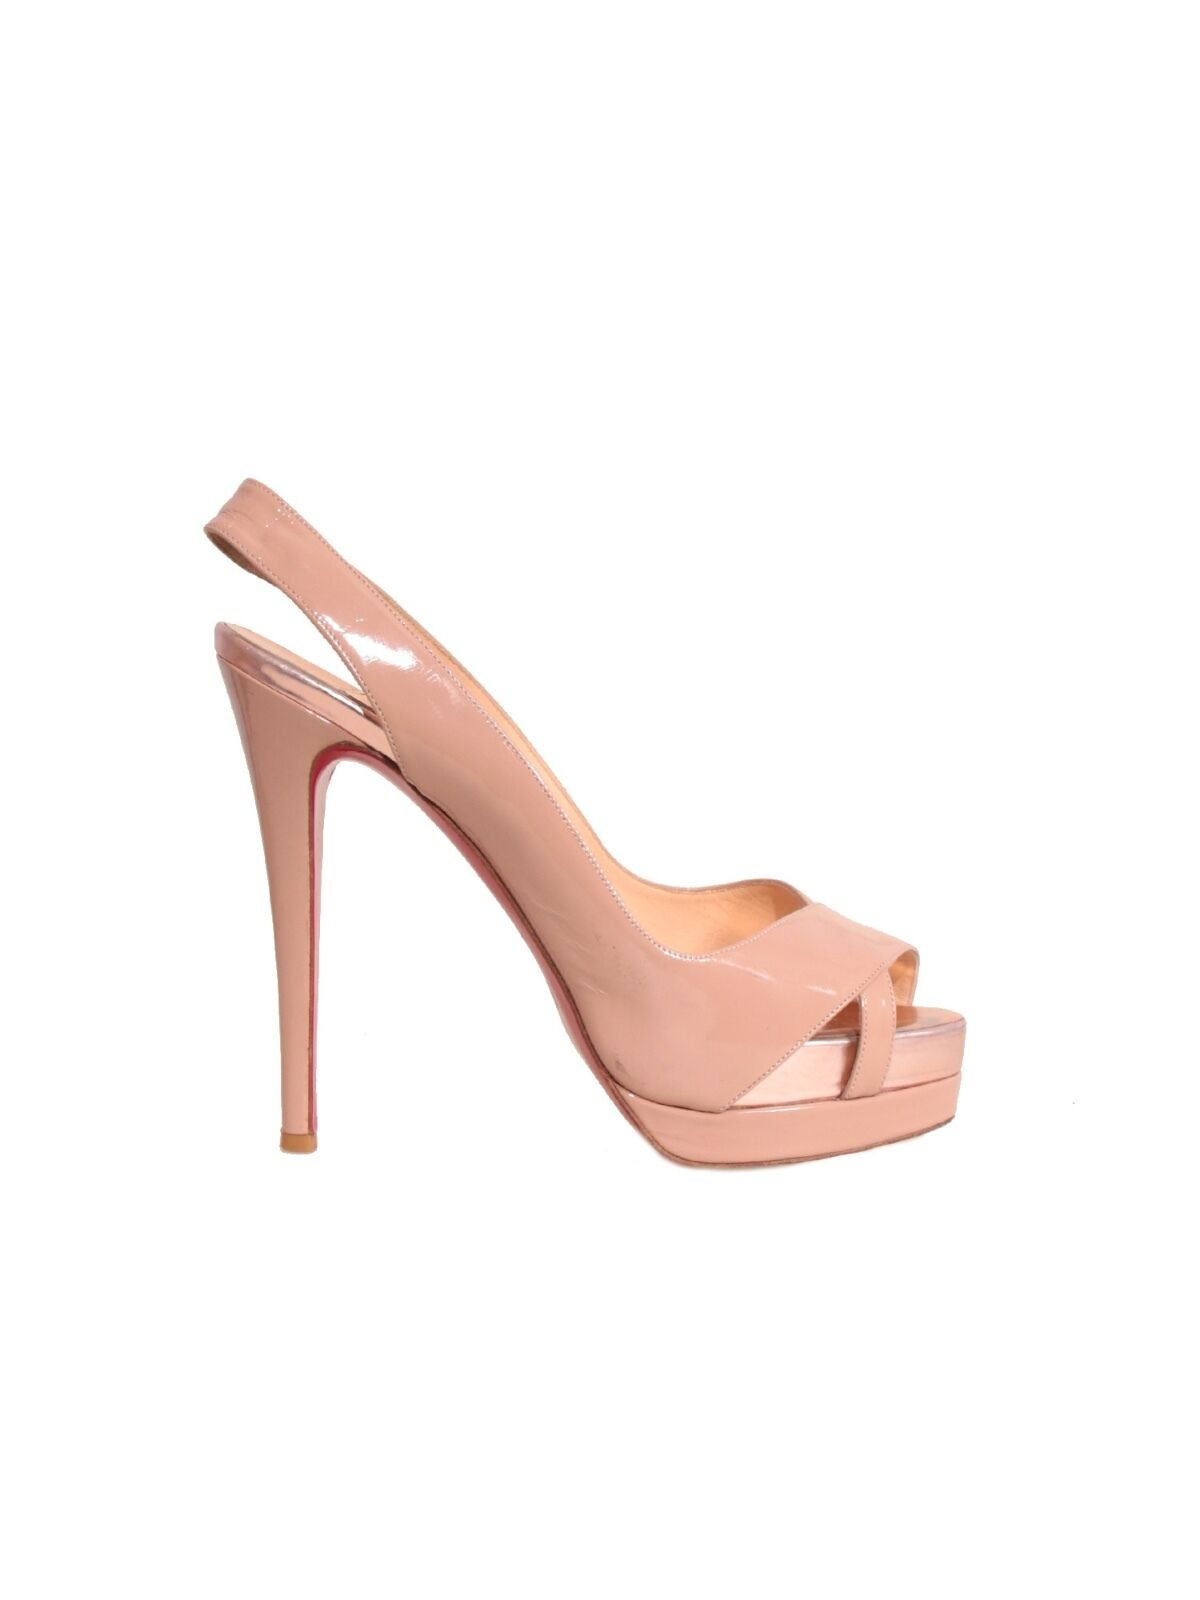 CHRISTIAN LOUBOUTIN Patent Leather Slingback Pumps Nude (SIZE 40)